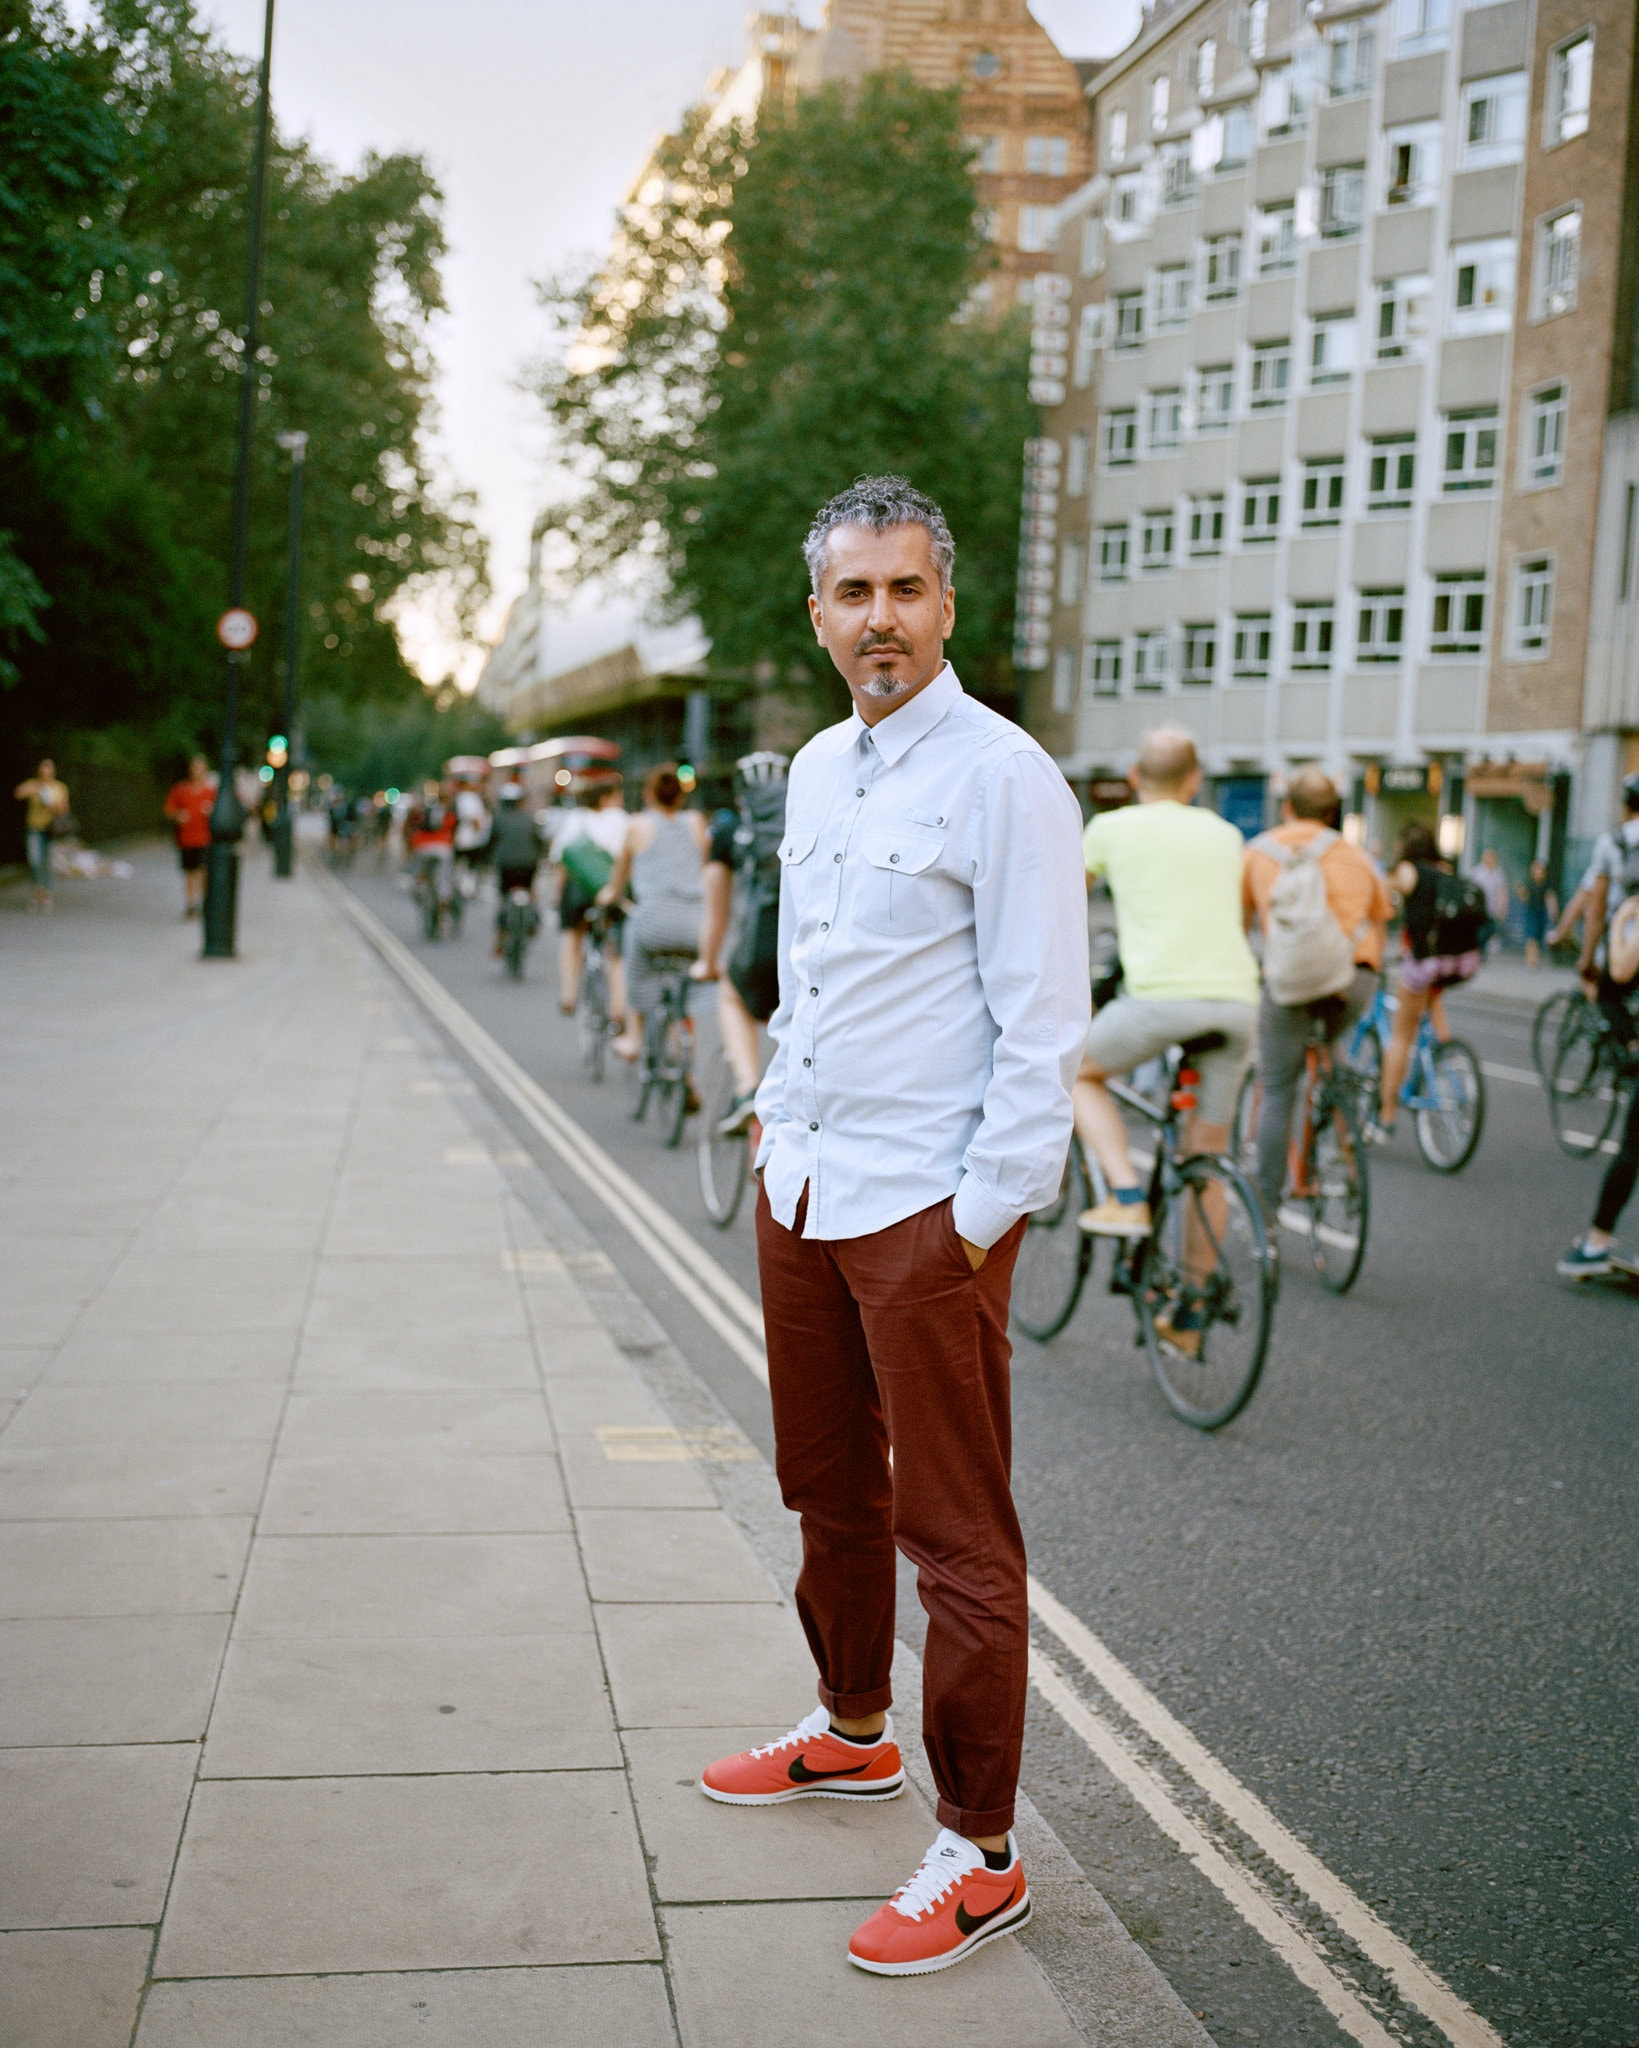 New York Times Magazine - Maajid Nawaz's Radical AmbitionThe former Islamist has started a foundation to combat extremism among Muslims — and has made a lot of enemies in the process.